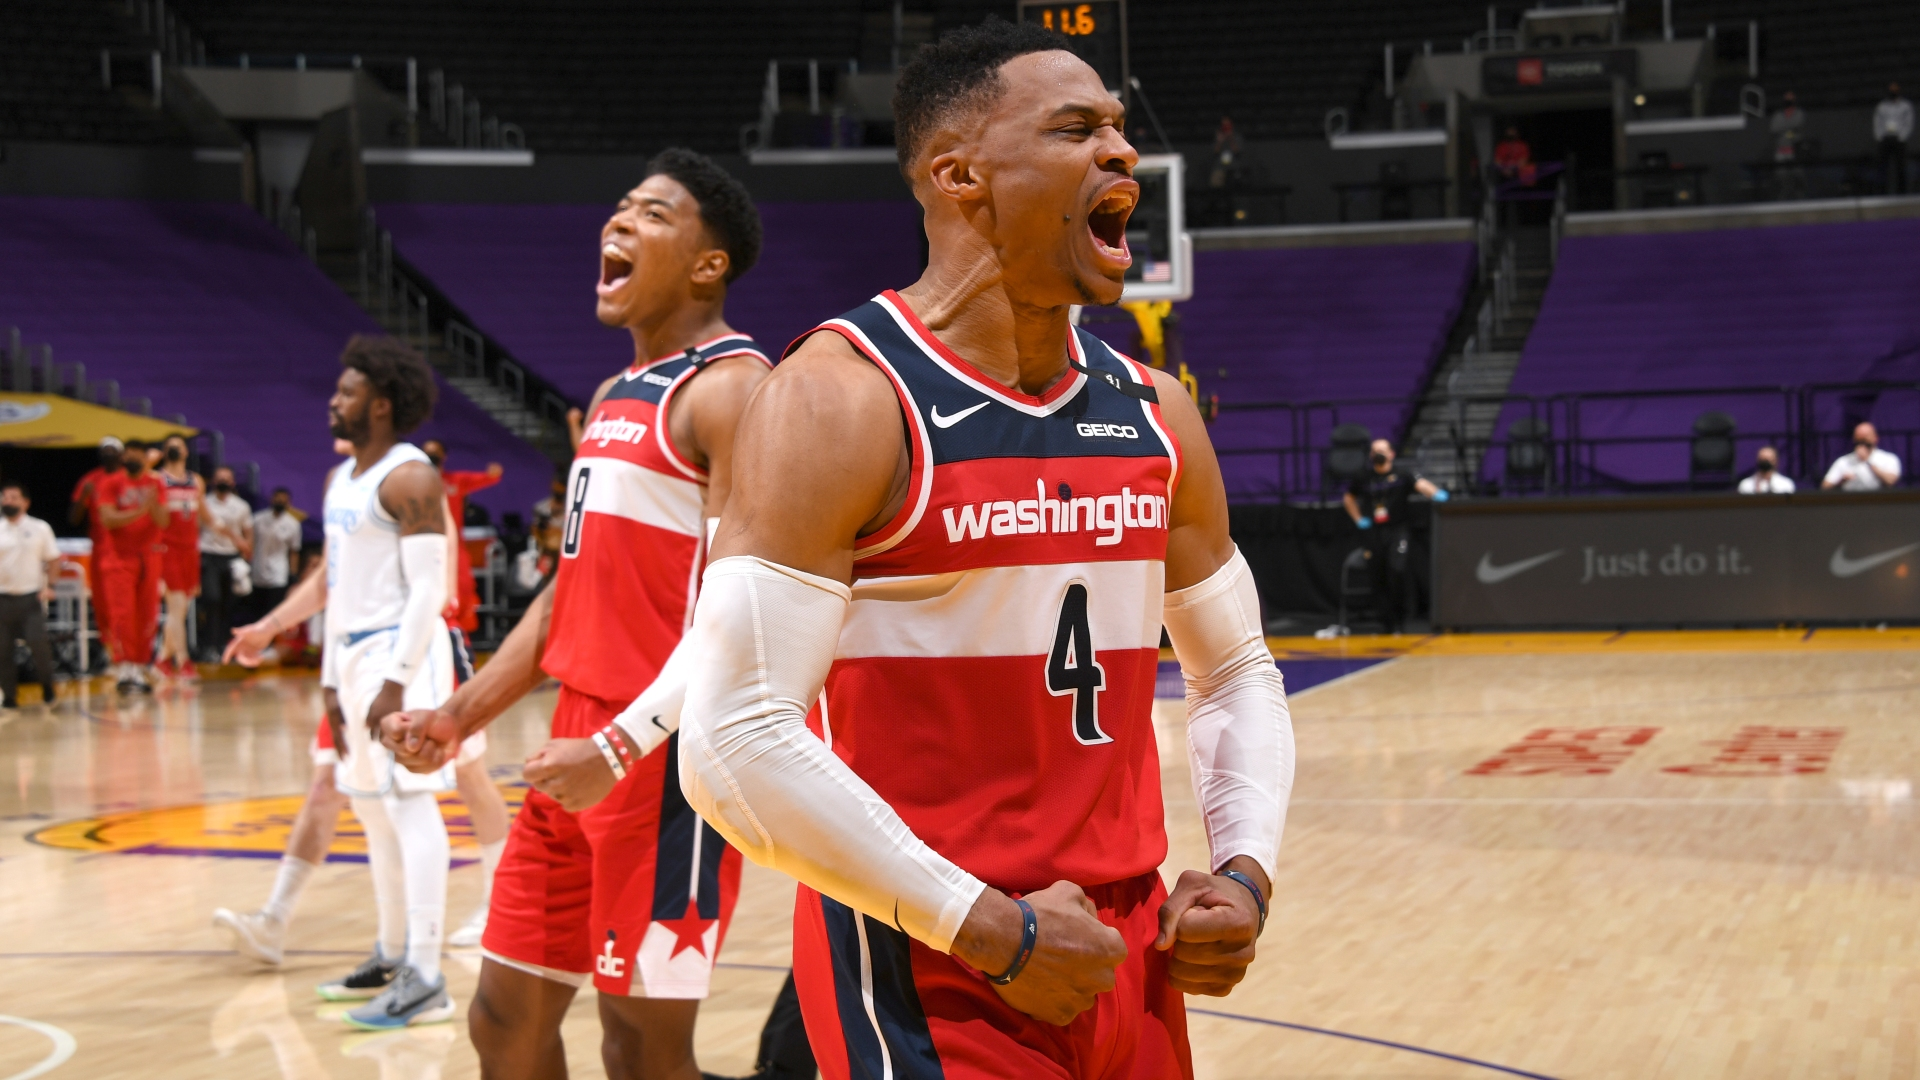 The Wizards have rallied from 6-17 to produce an impressive run of results, delighting former NBA MVP Russell Westbrook.